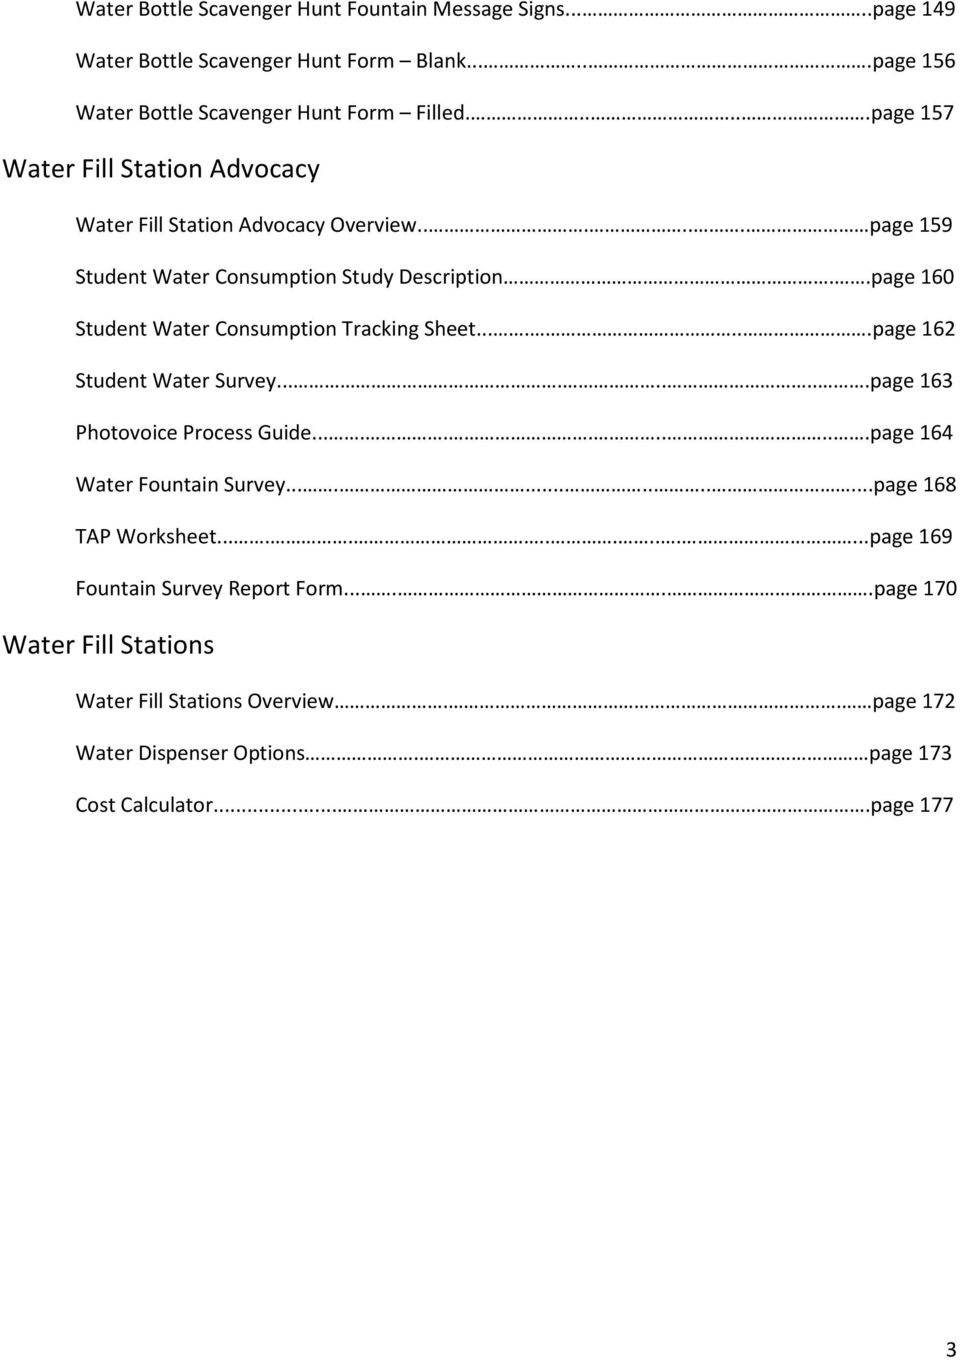 .page 160 Student Water Consumption Tracking Sheet.......page 162 Student Water Survey.........page 163 Photovoice Process Guide...........page 164 Water Fountain Survey.